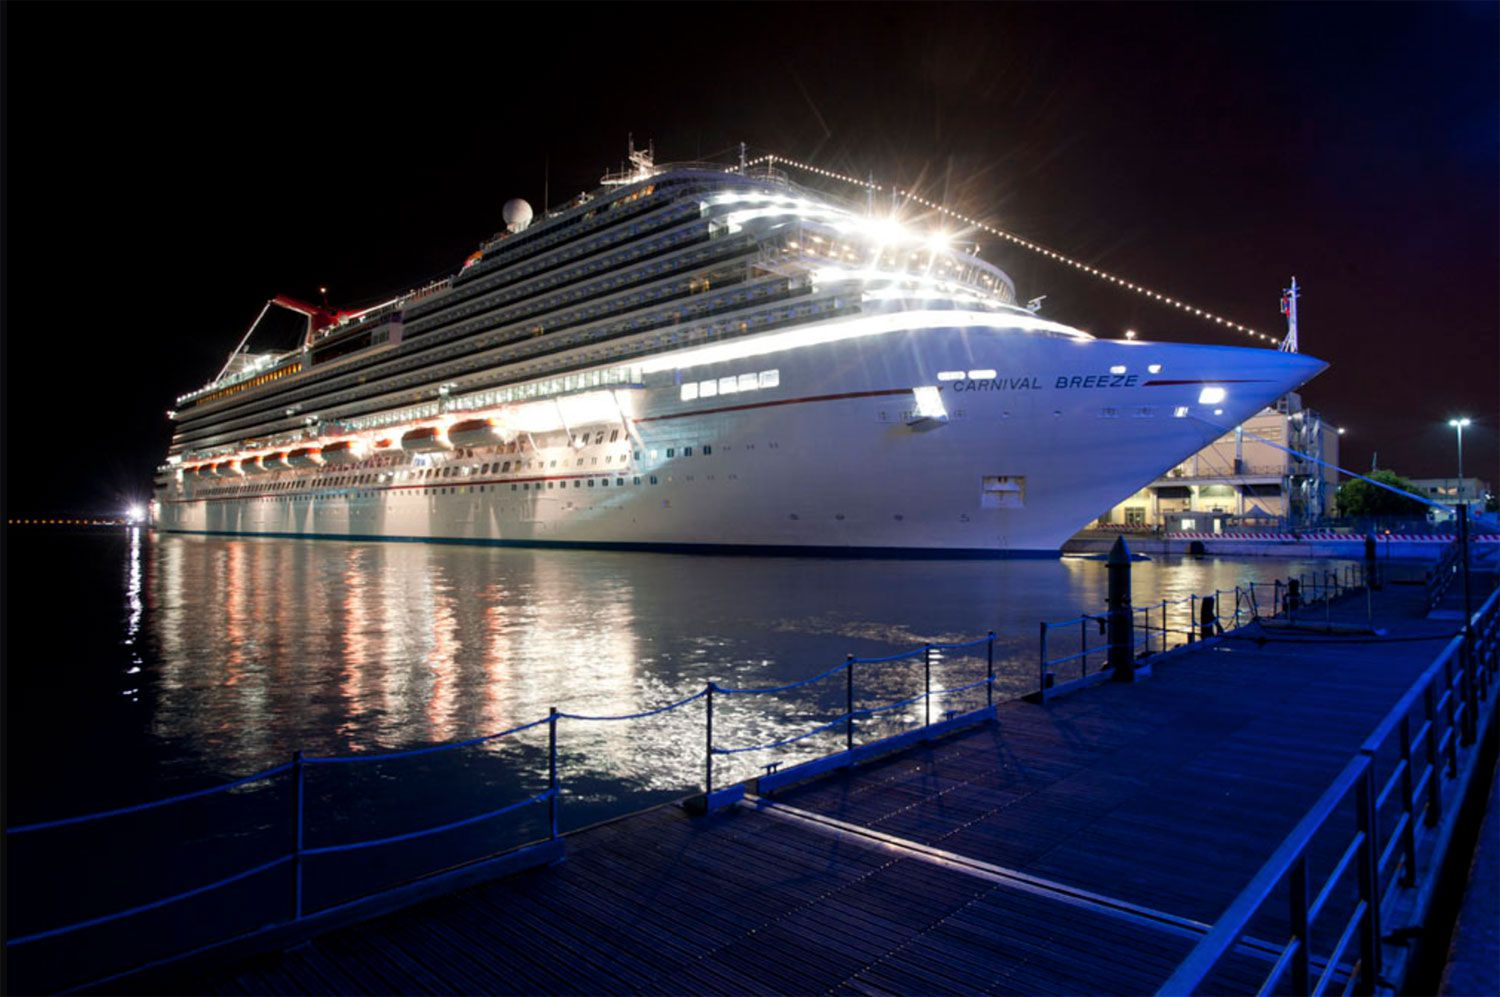 Weddings And Honeymoon Cruises On Carnival Cruise Ships